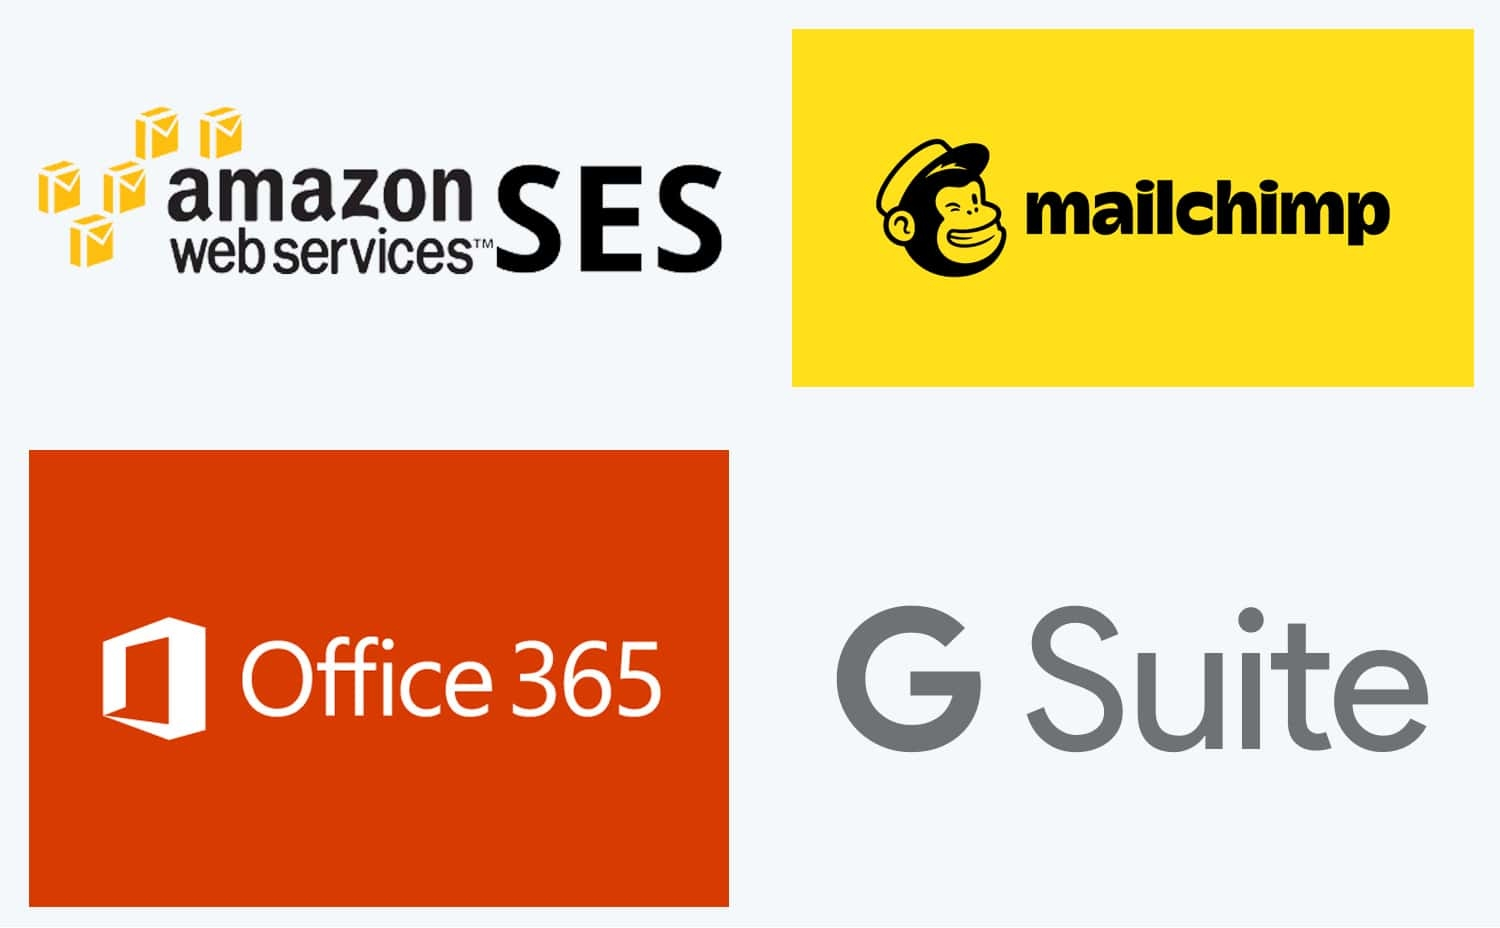 Email service providers include Google, Microsoft, Mailchimp, Amazon, and others.